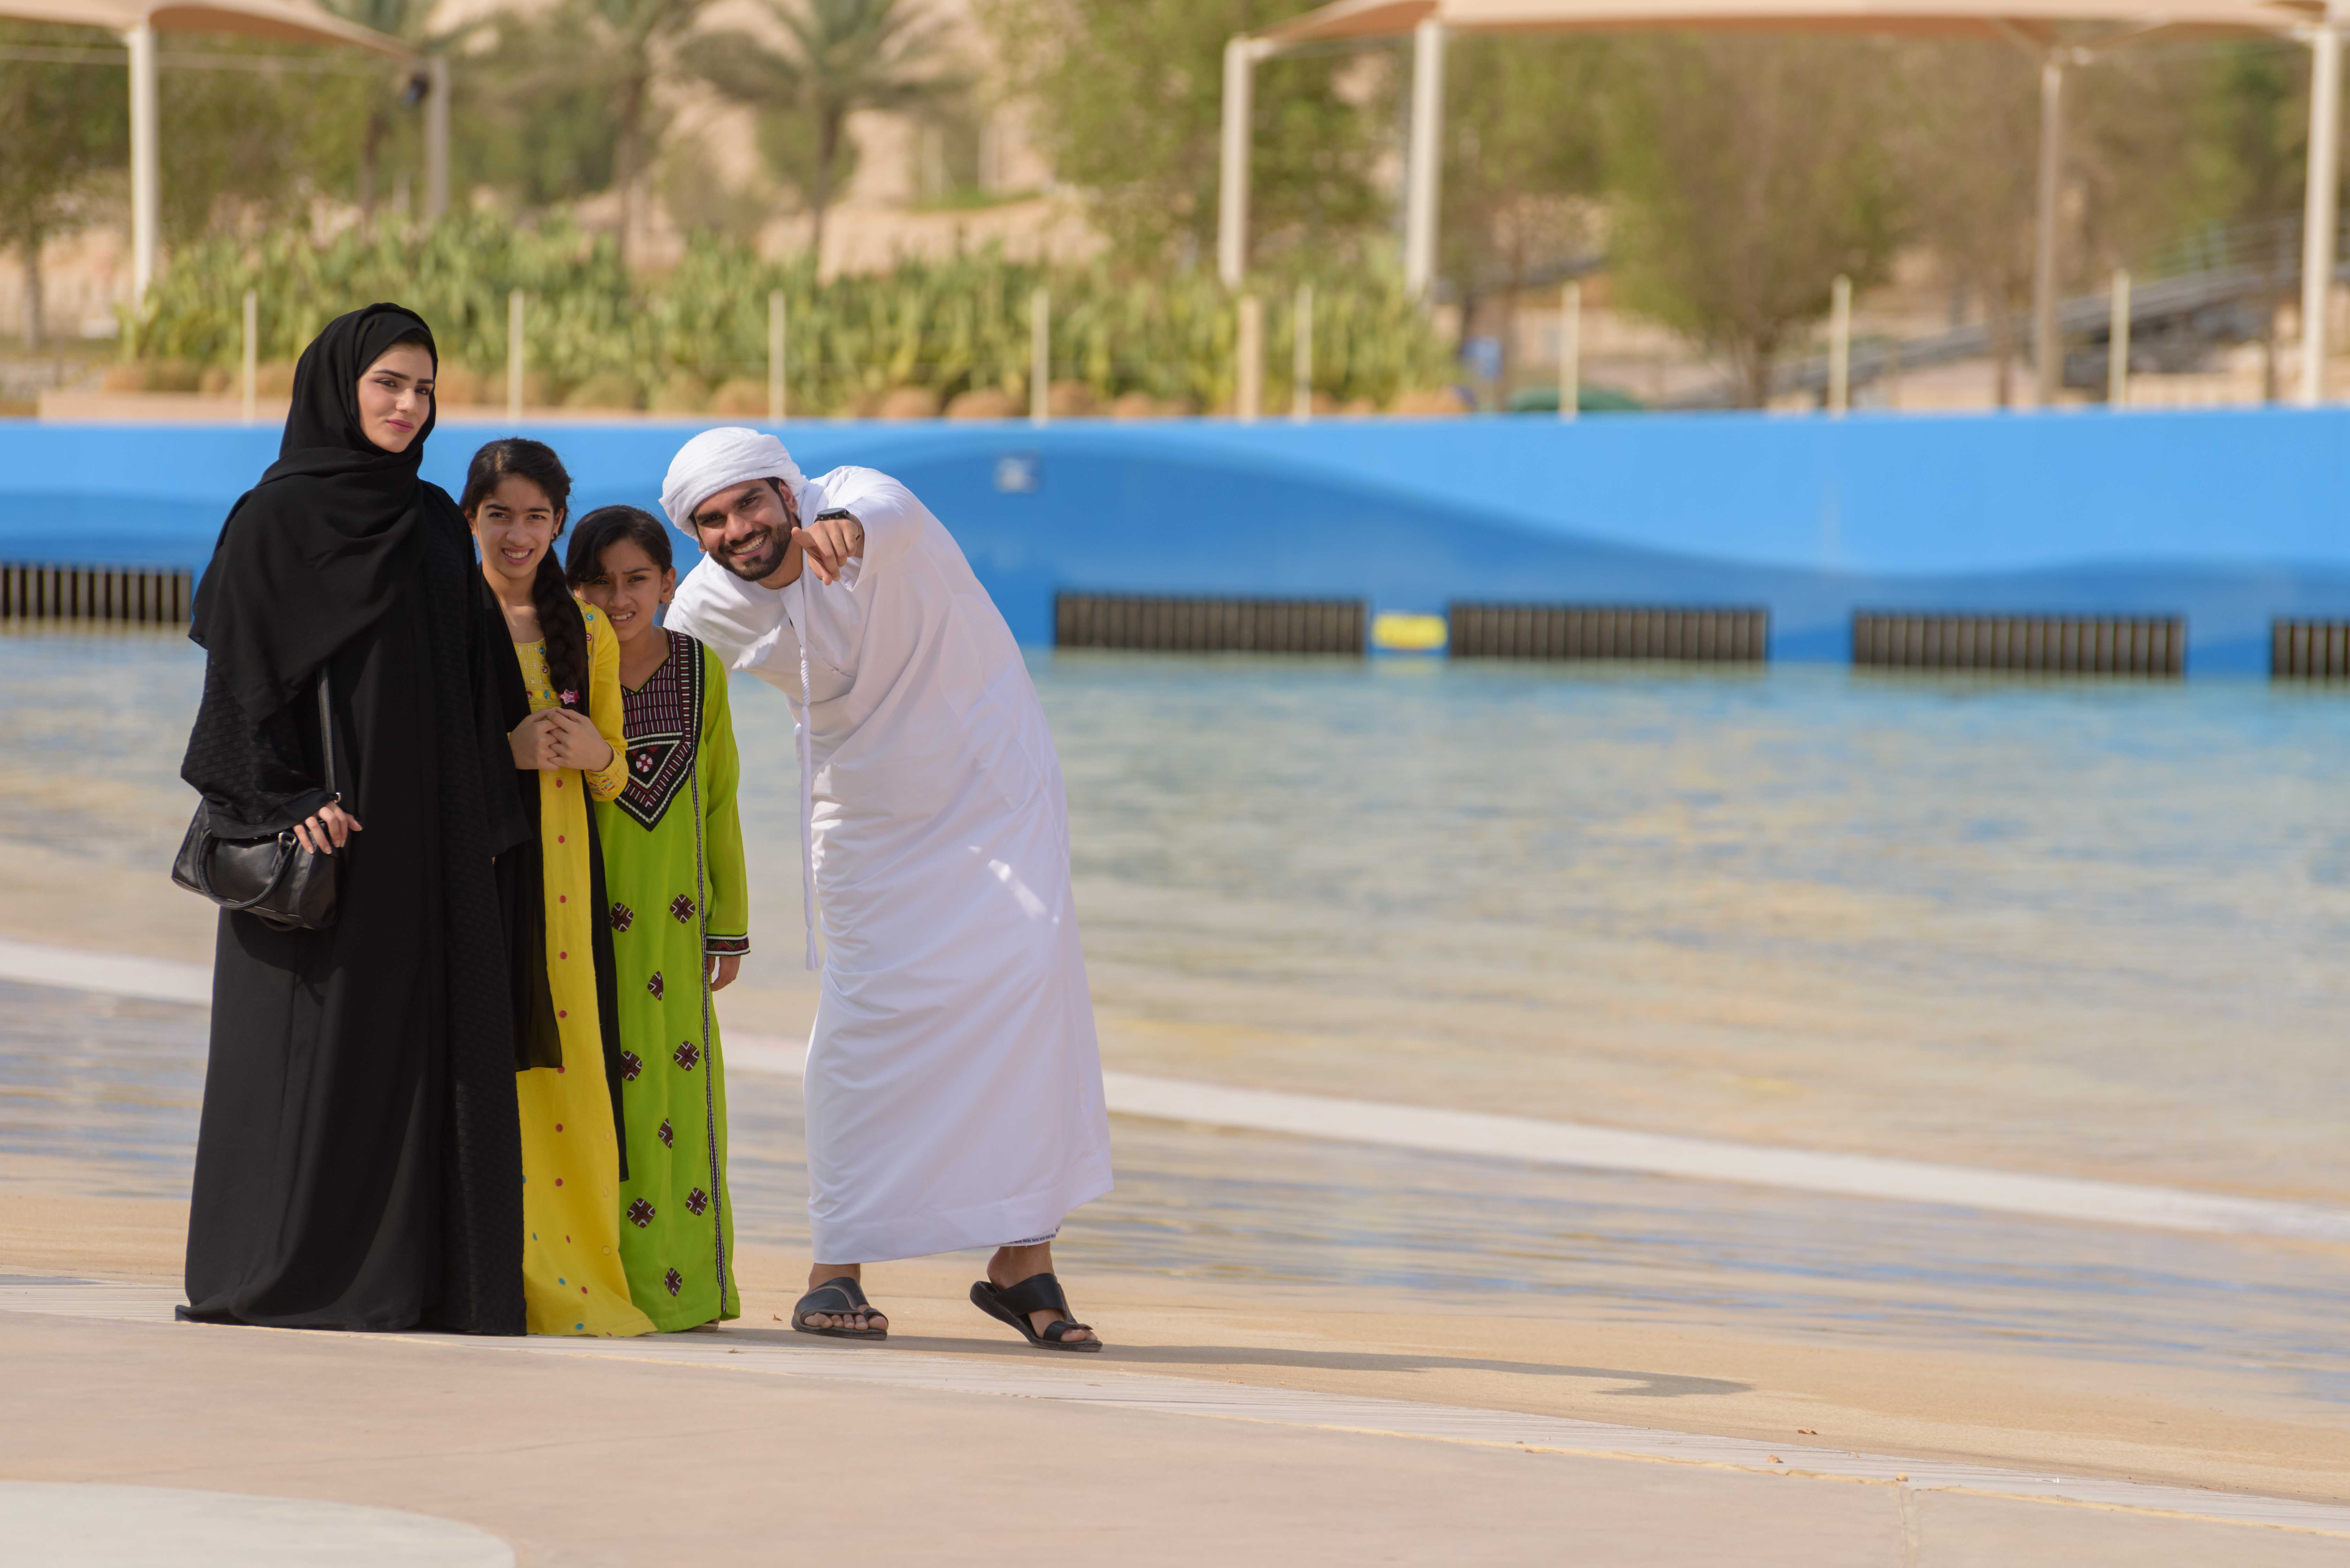 Al Ain gears up for the 1st Winter Festival at Wadi Adventure